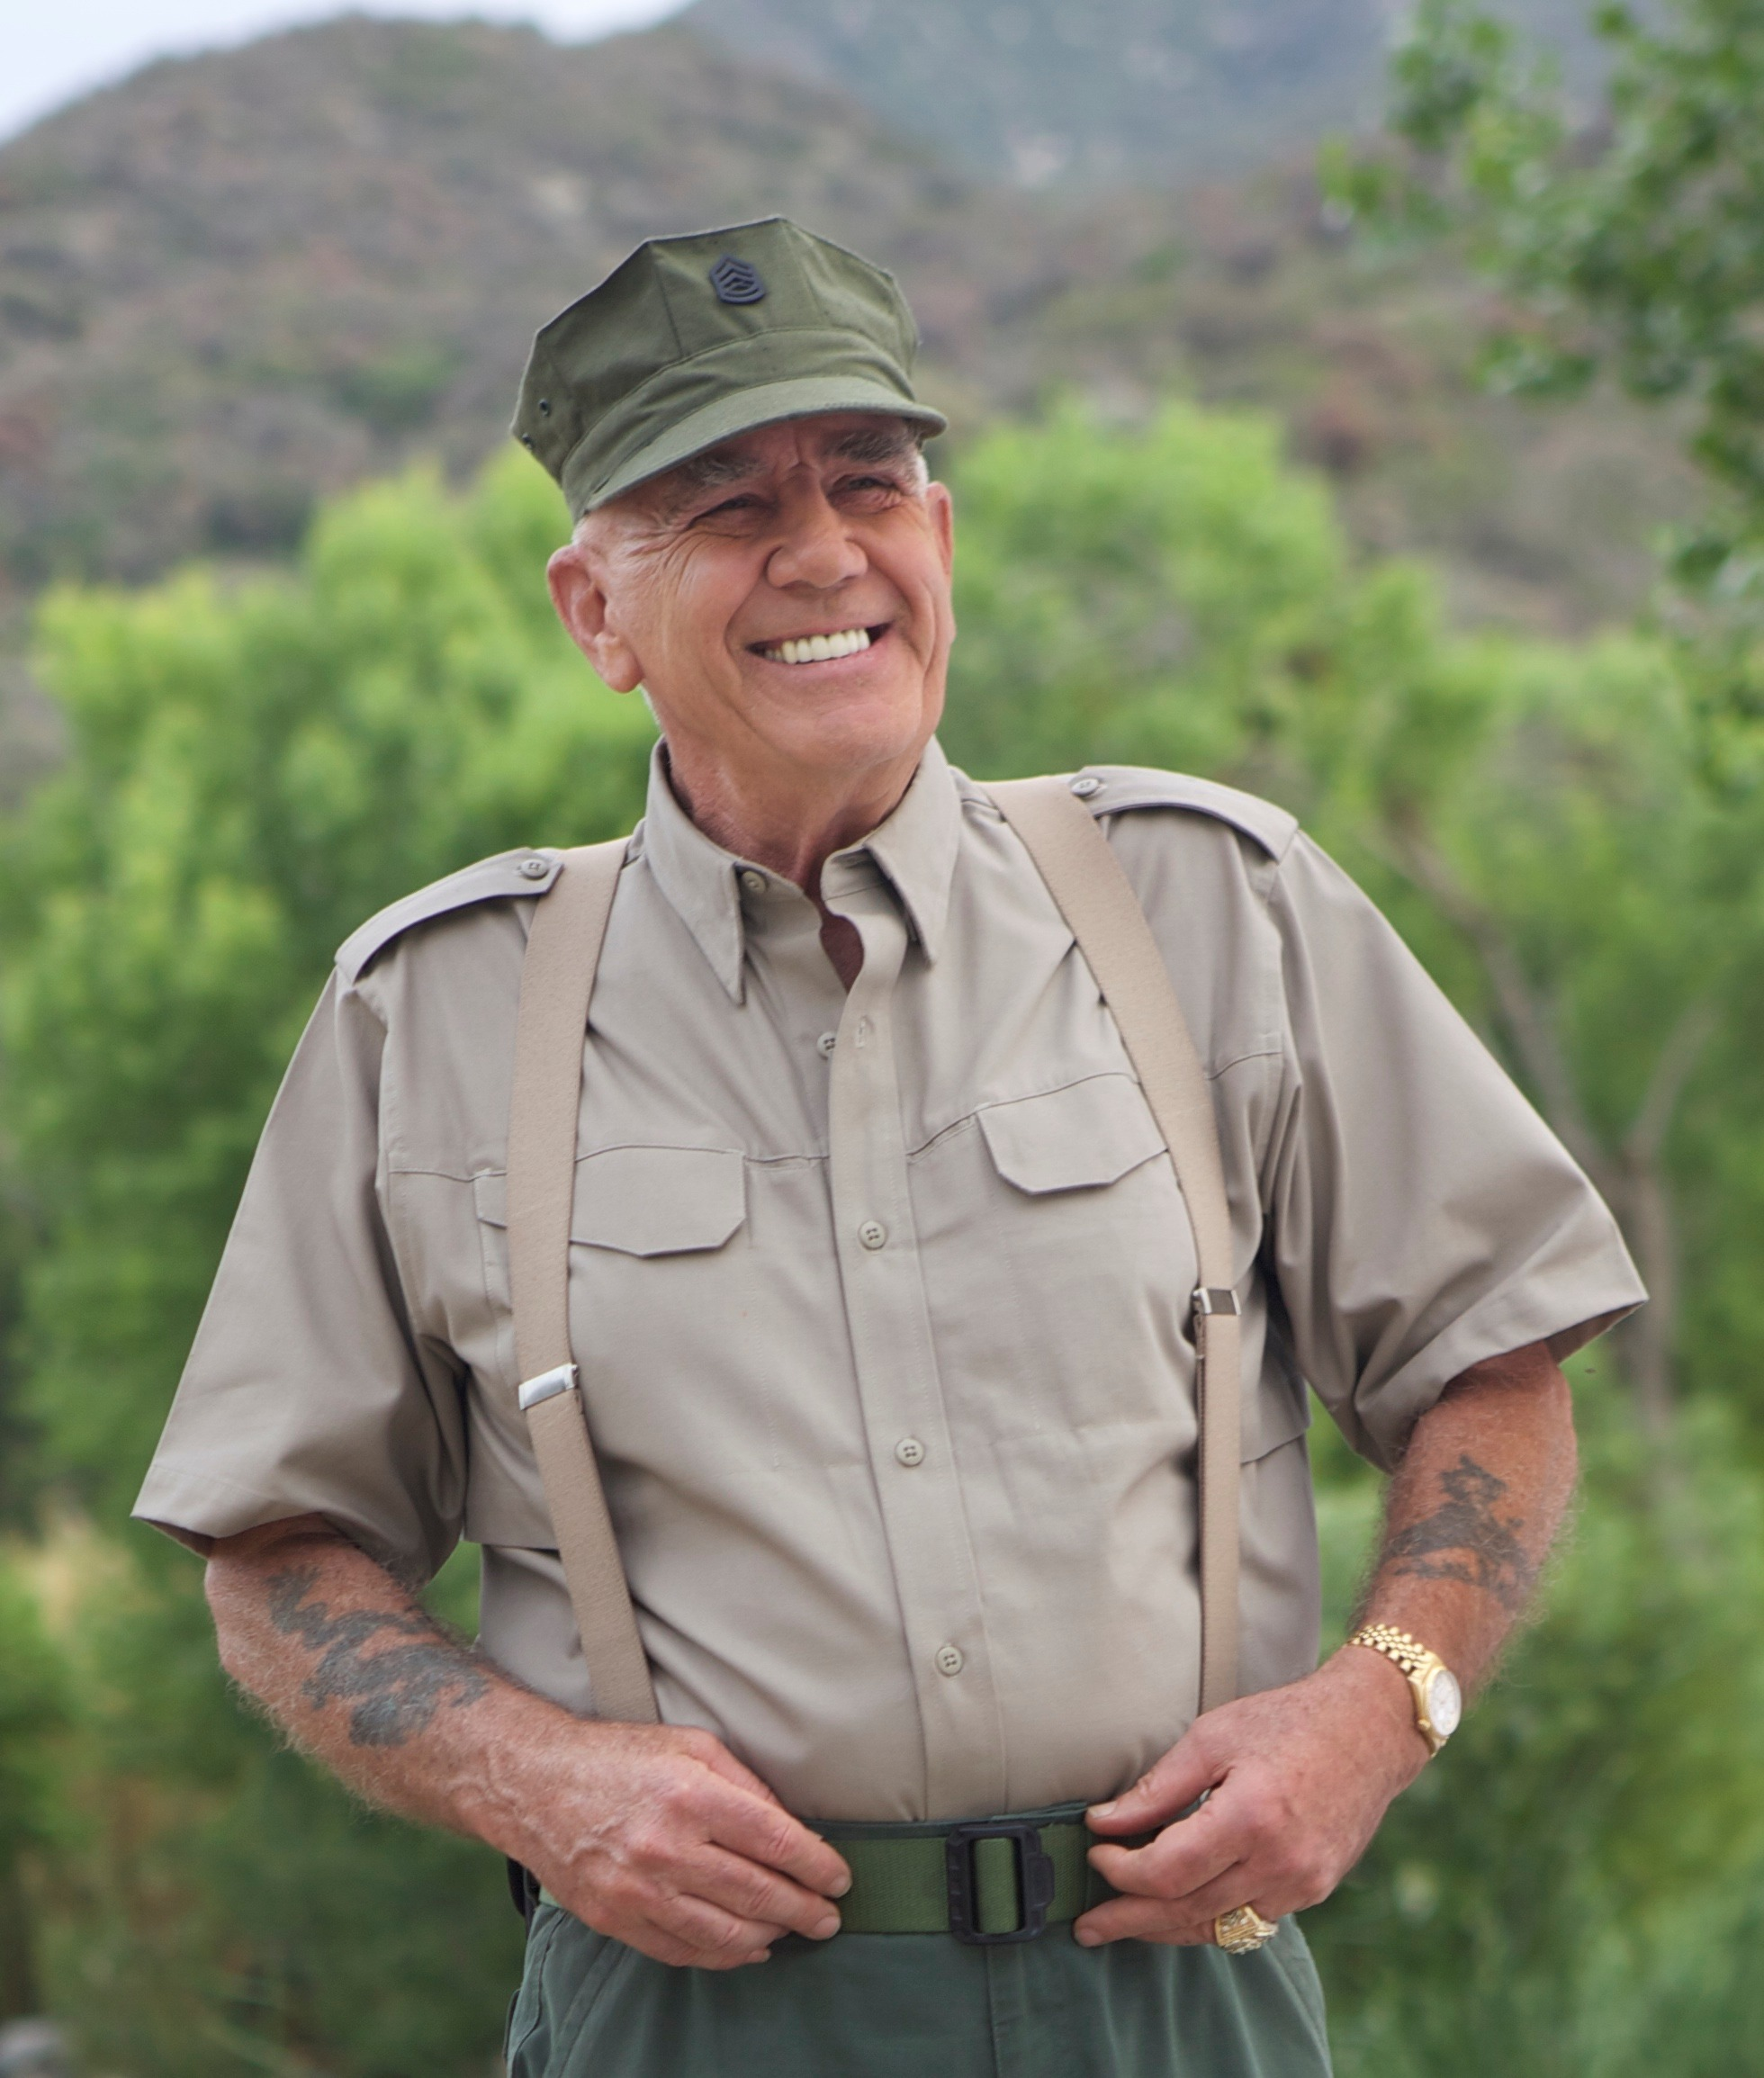 R. Lee Ermey is in his military training dress